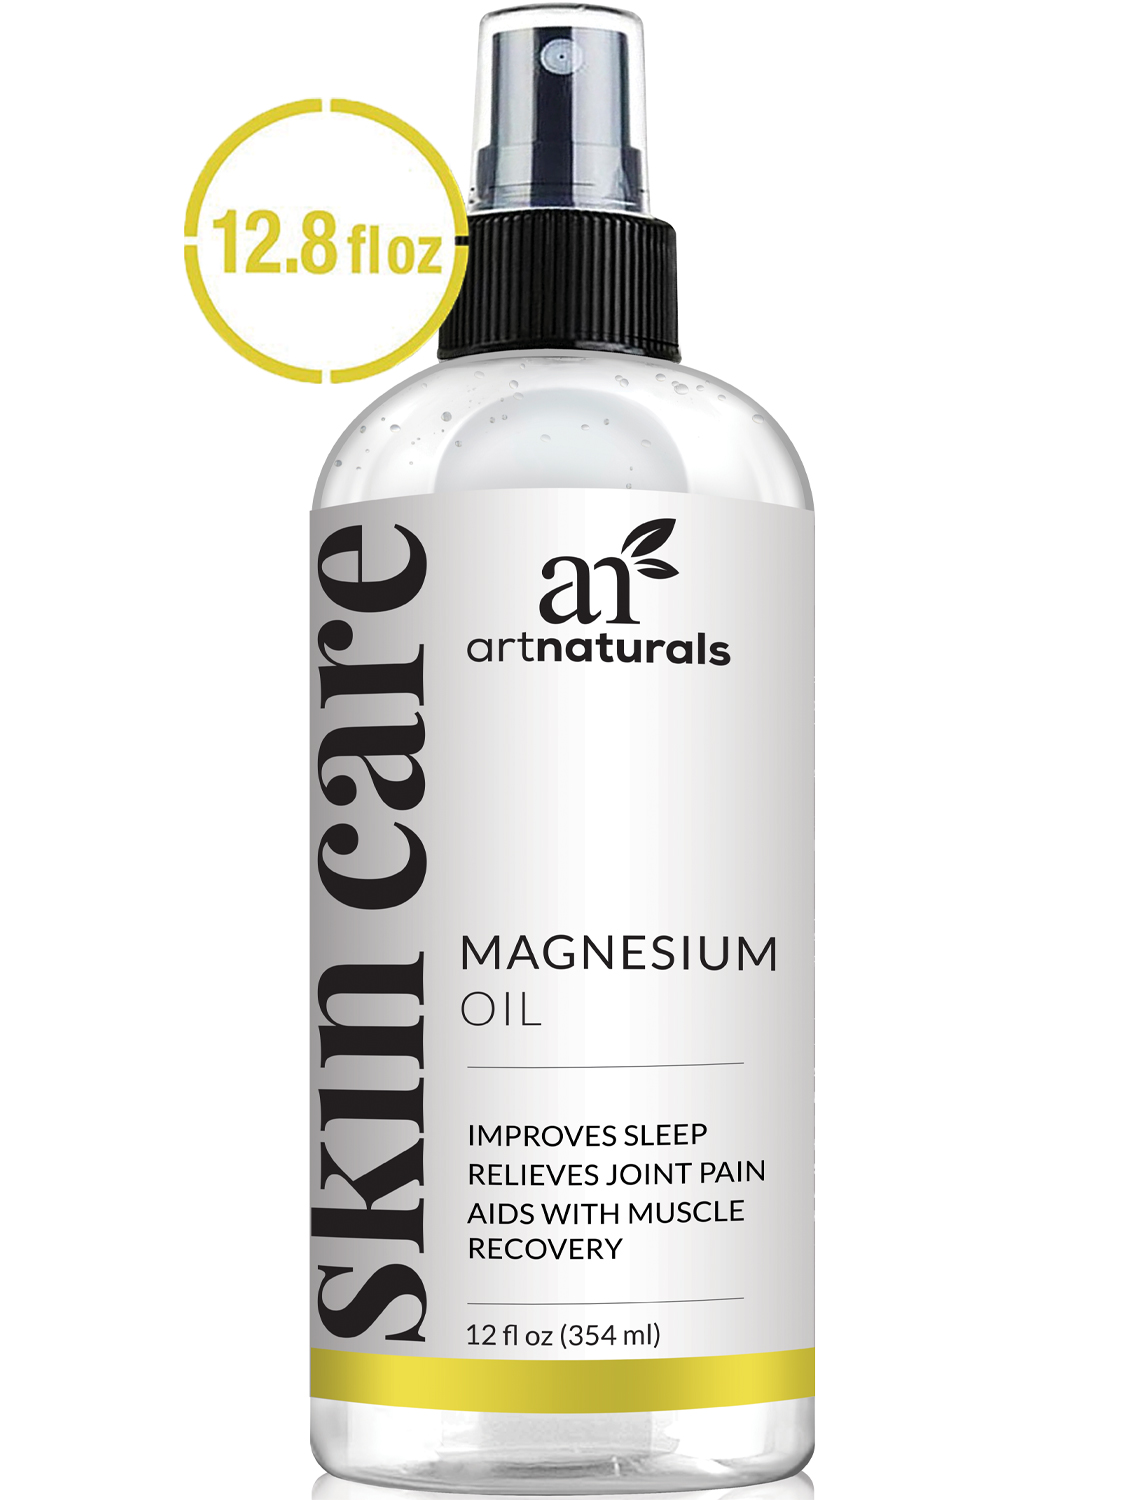 Artnaturals Pure Magnesium Oil Spray  Only $10.99 (Reg $12.99) + Free Shipping at Walmart.com!